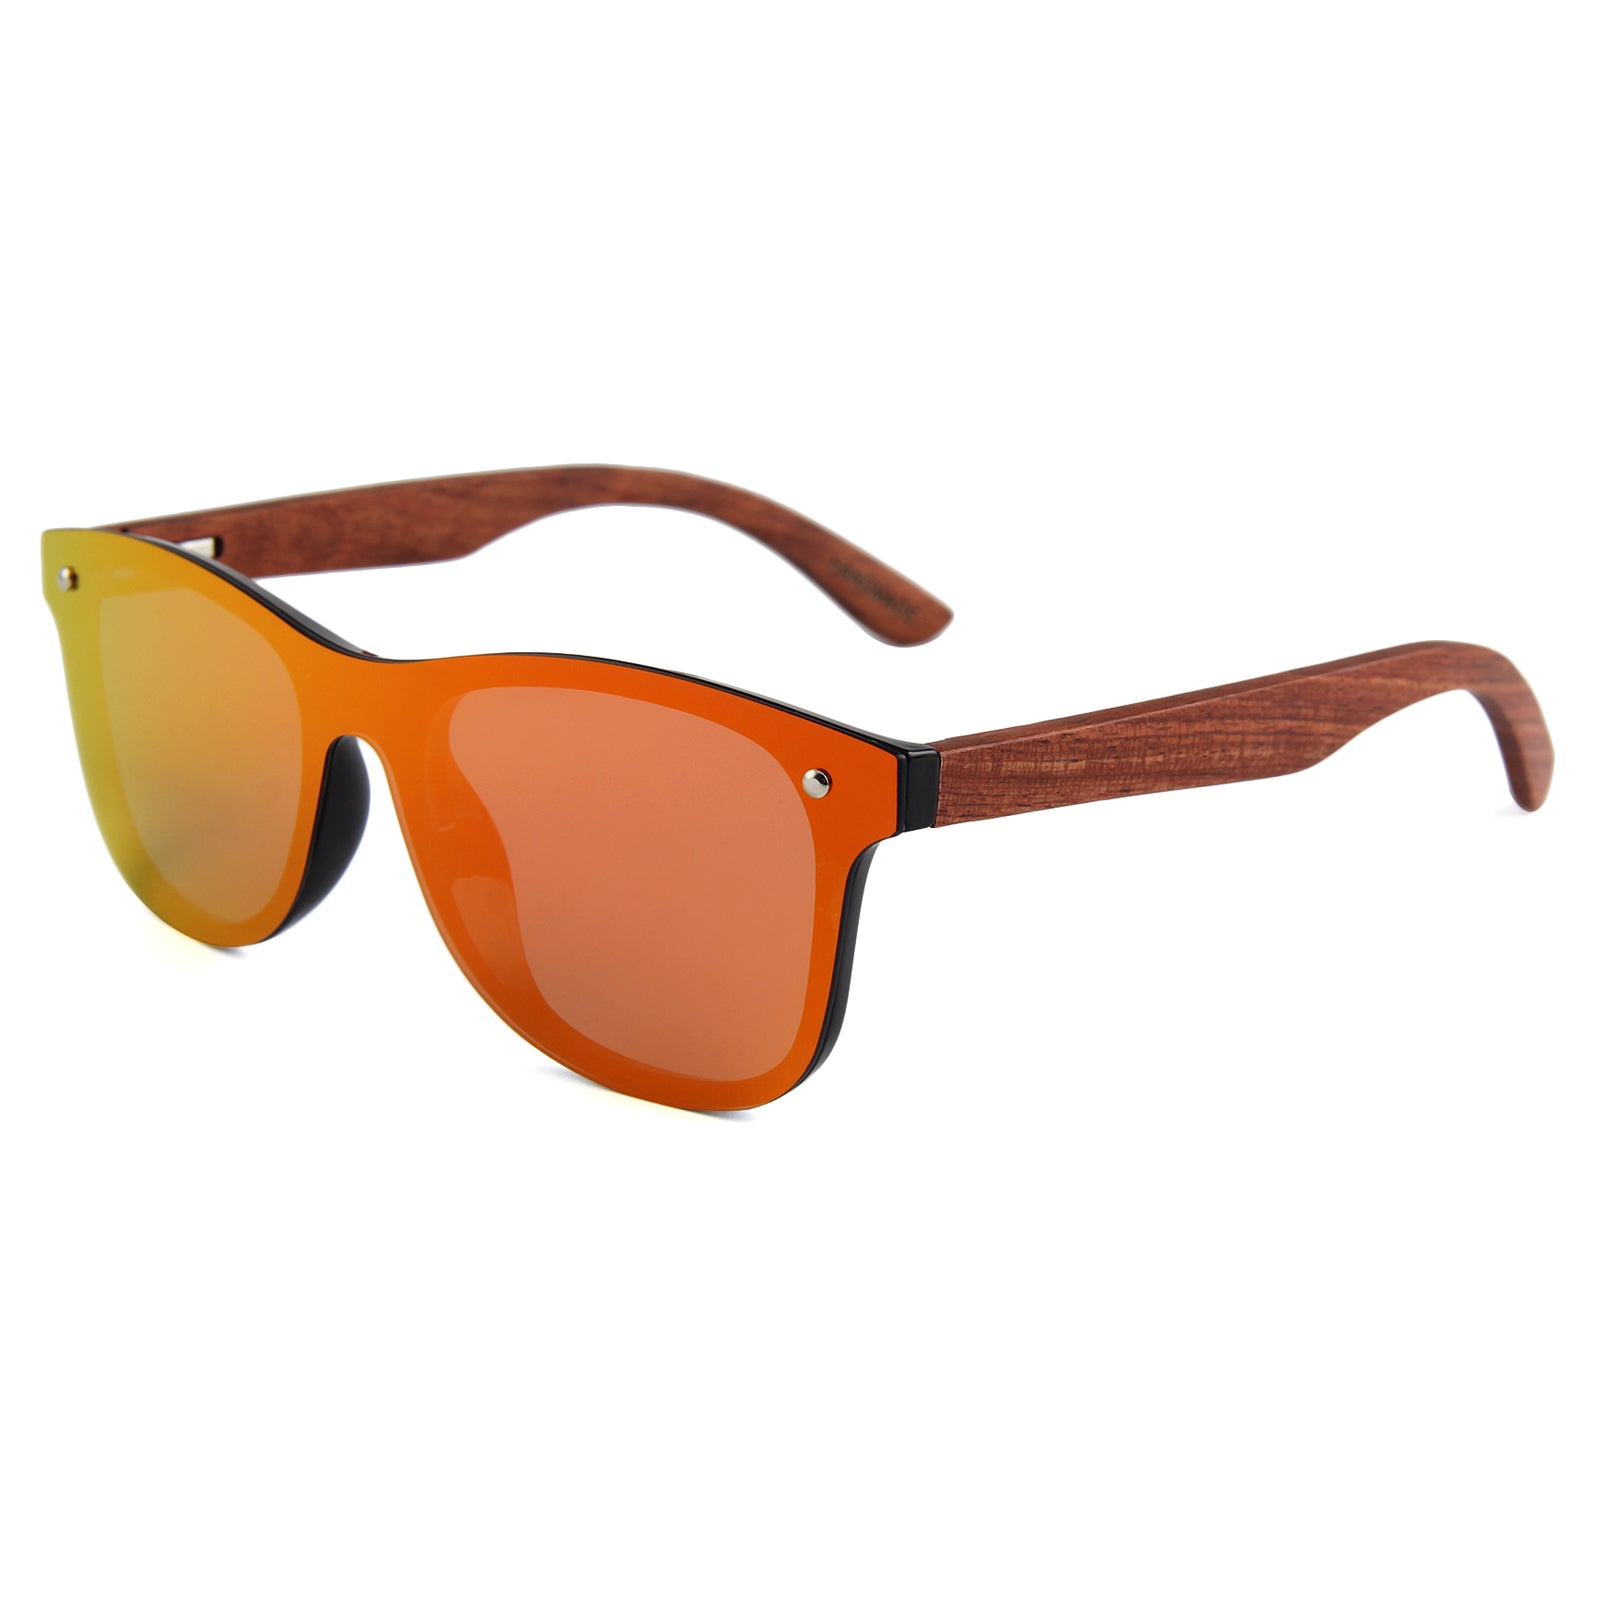 Berkton - 02 - Red Polarized Lens